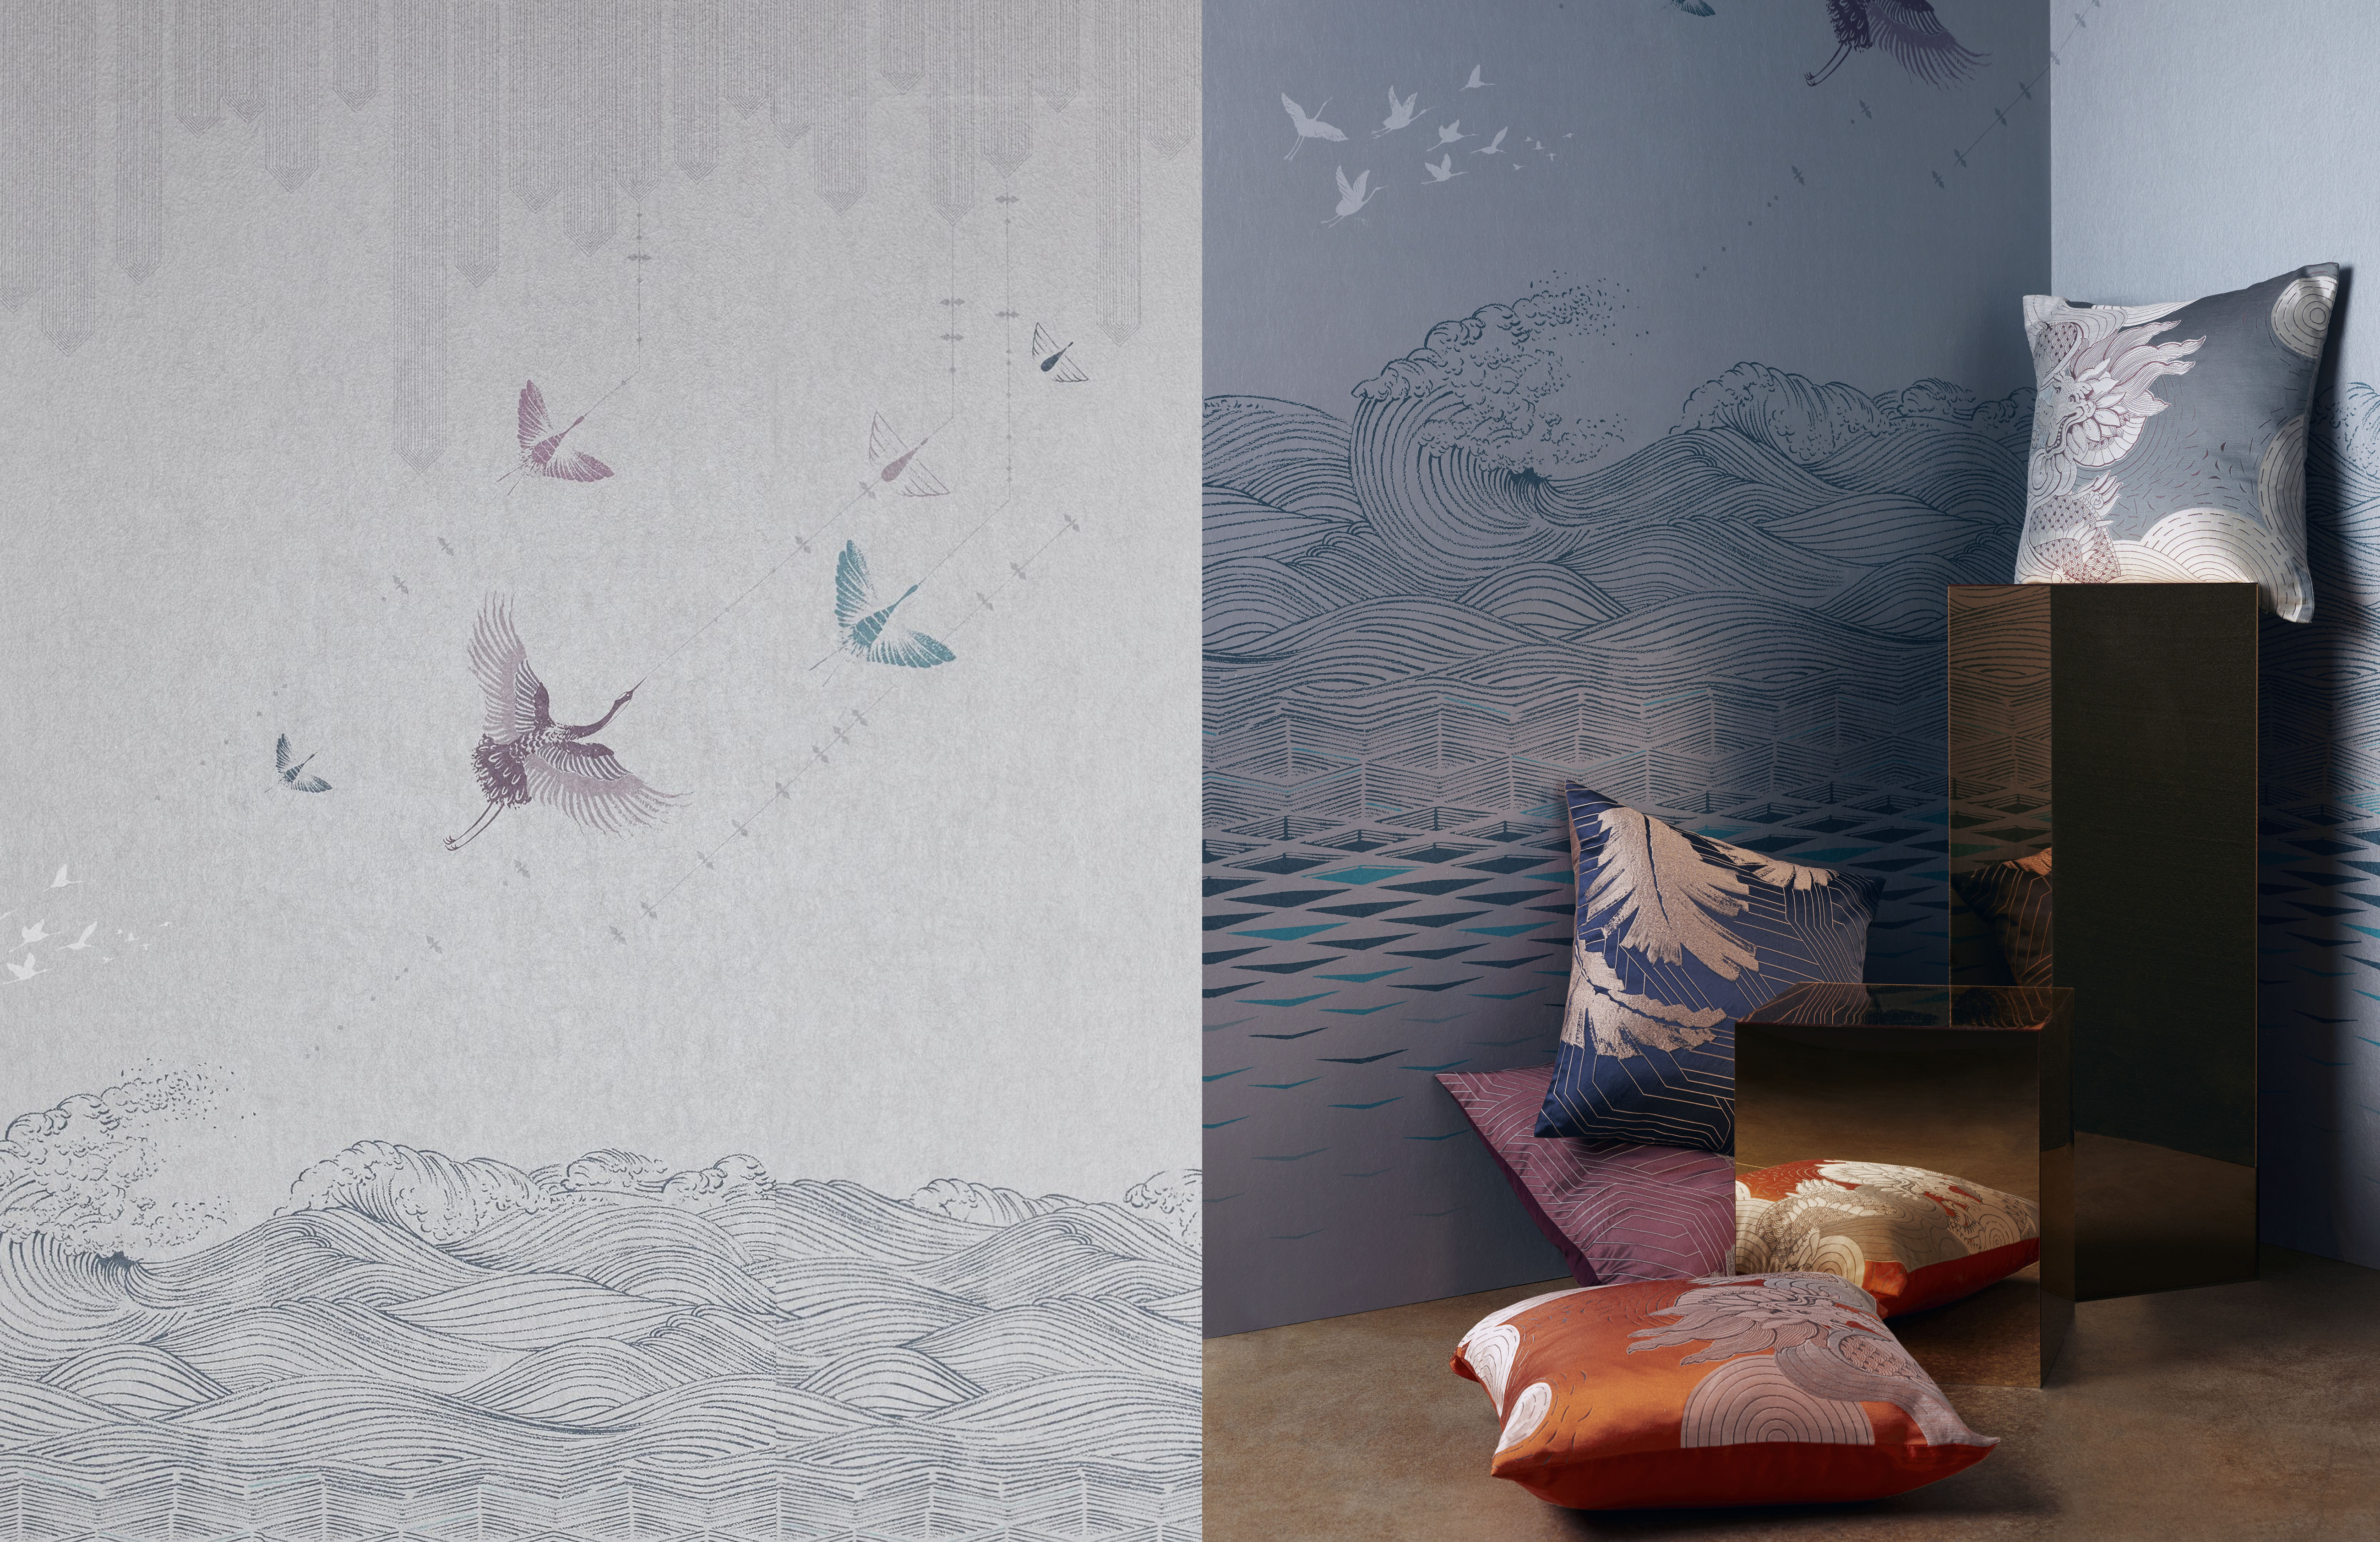 John Lewis x Japonisme: 'Kaiyo' wallpaper panels and 'Konoha' and 'Kumo' cushions. John Lewis